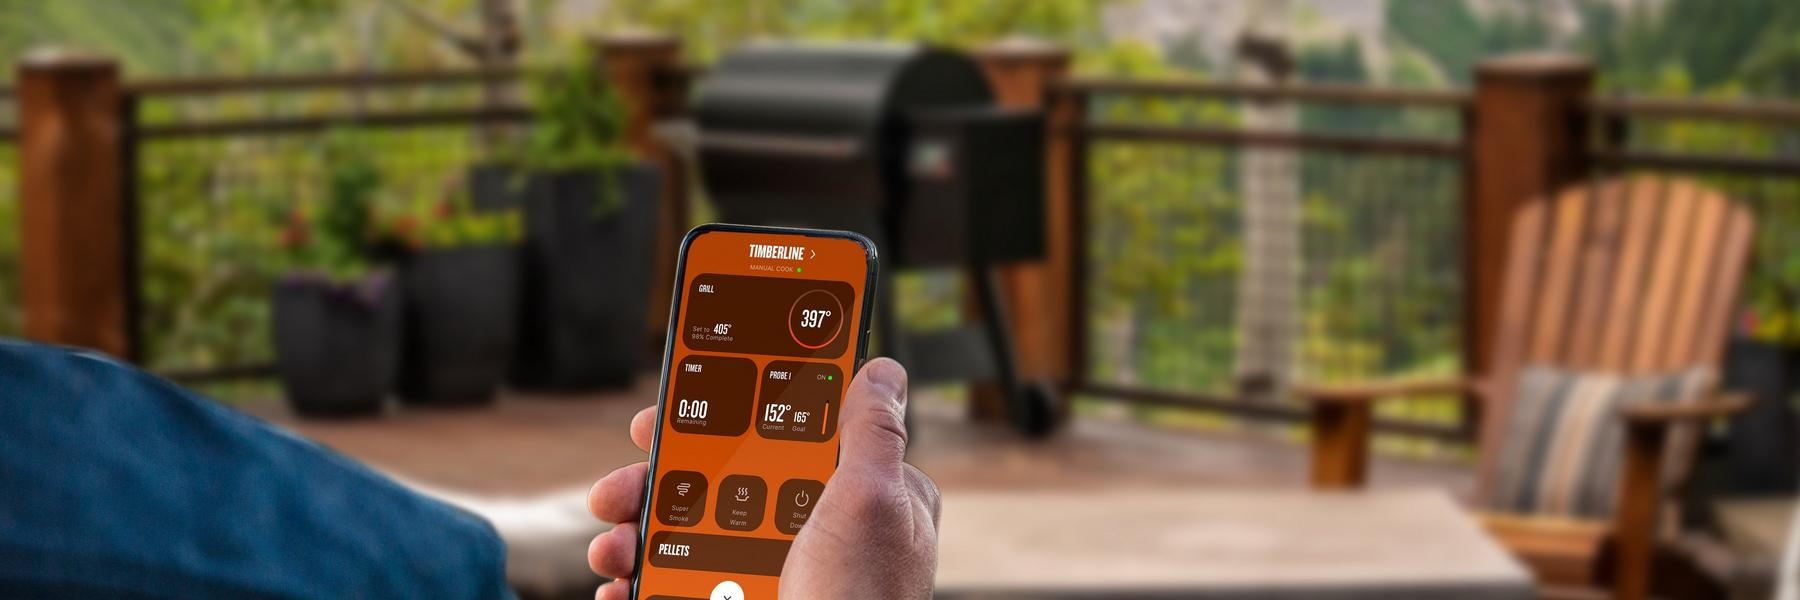 WiFIRE_Hand2-GrillControll_Patio